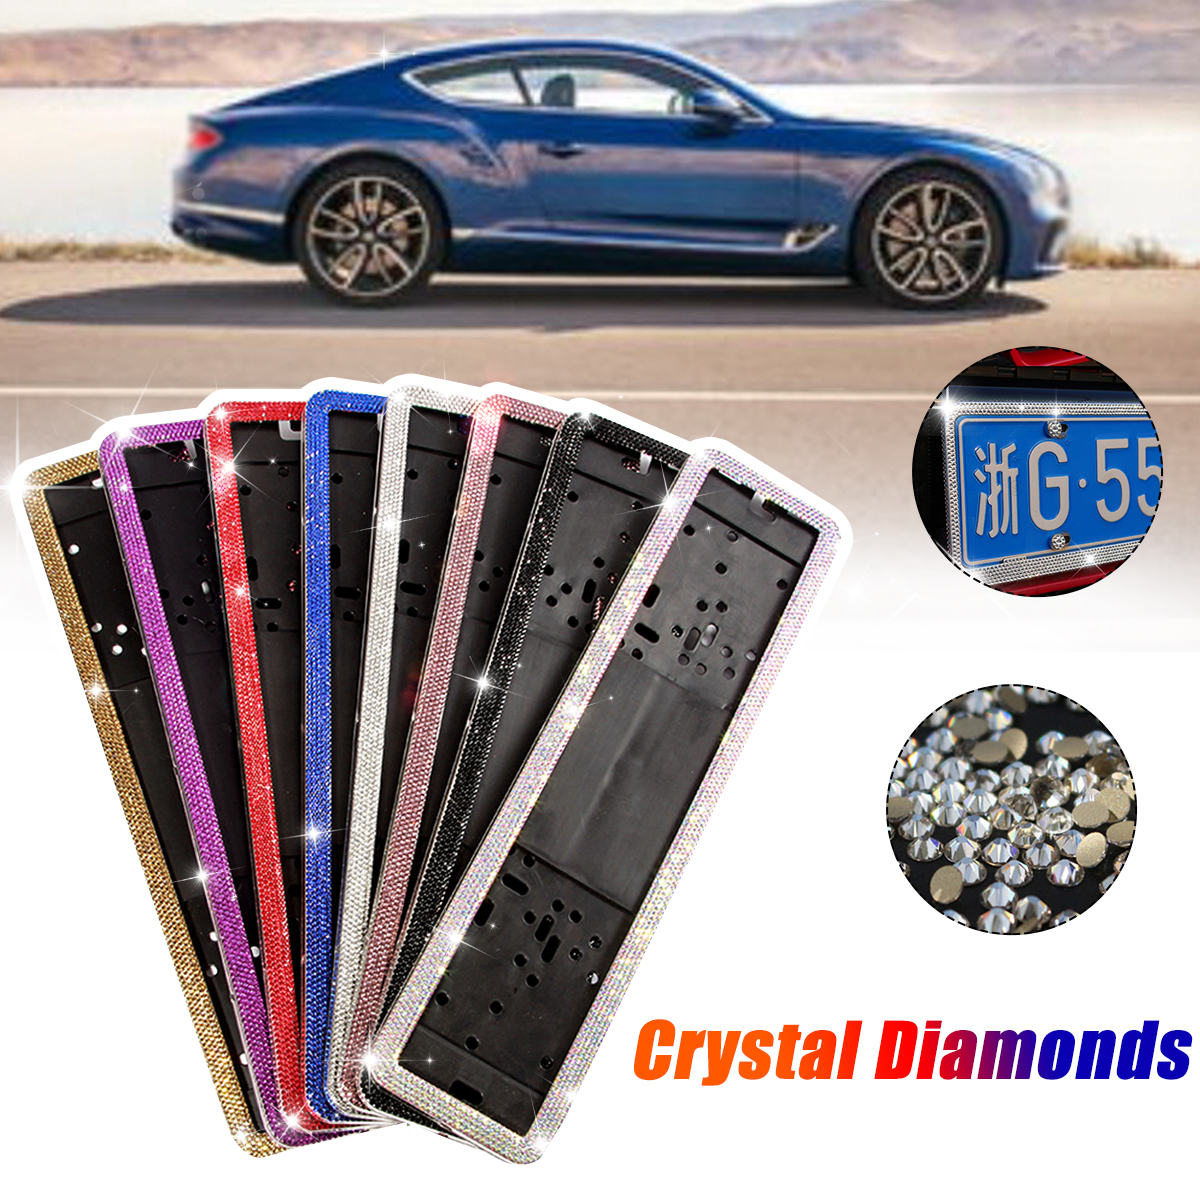 1 Set Stainless Steel Crystal Diamonds European German Russian Car License Plate Frame Number License Plate Frame Holder